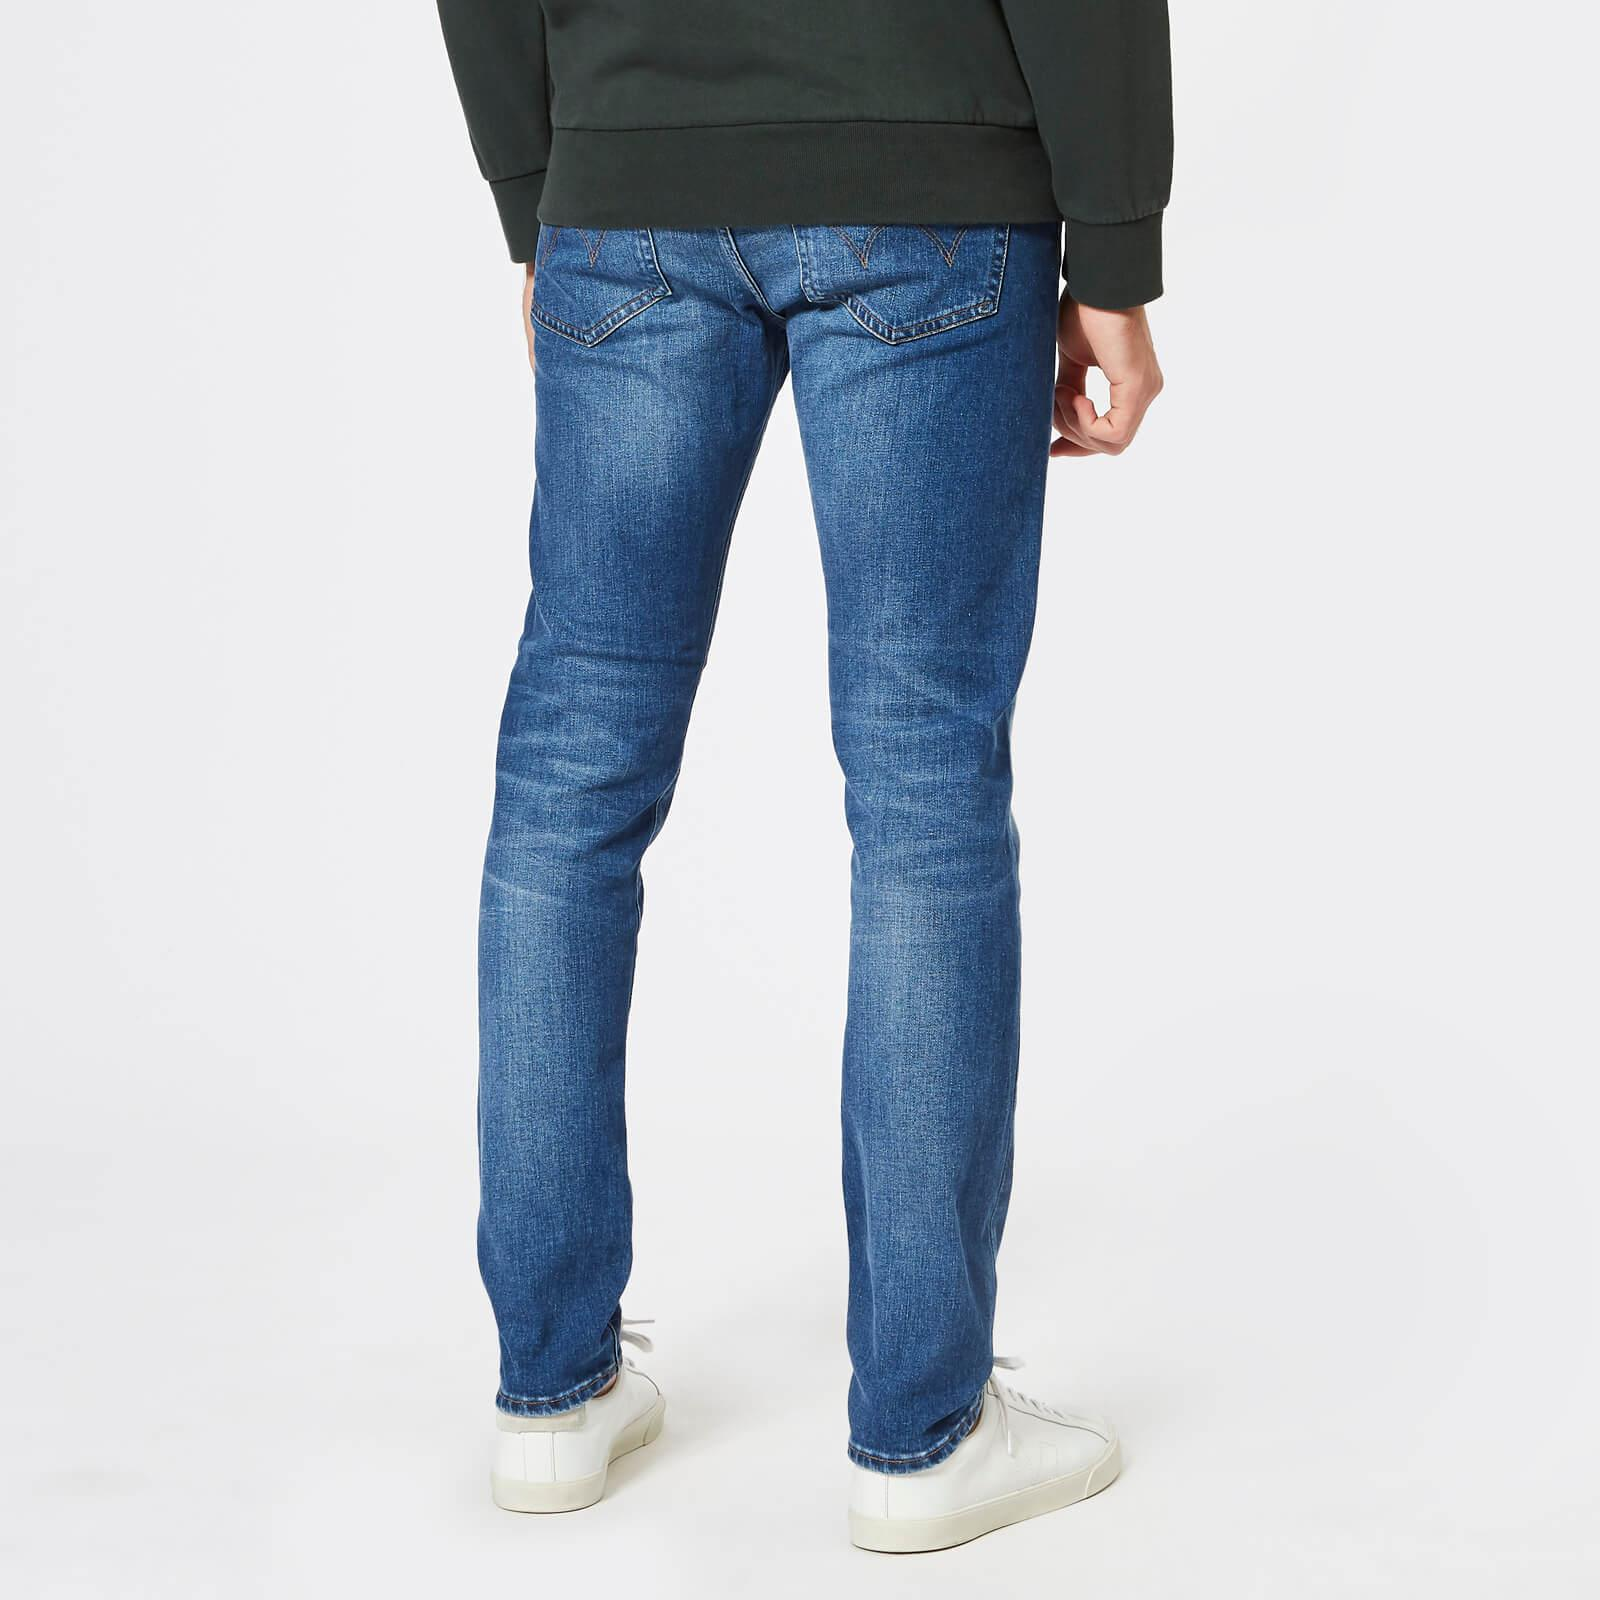 2c785f848b89a Edwin - Blue Ed-85 Slim Tapered Jeans for Men - Lyst. View fullscreen